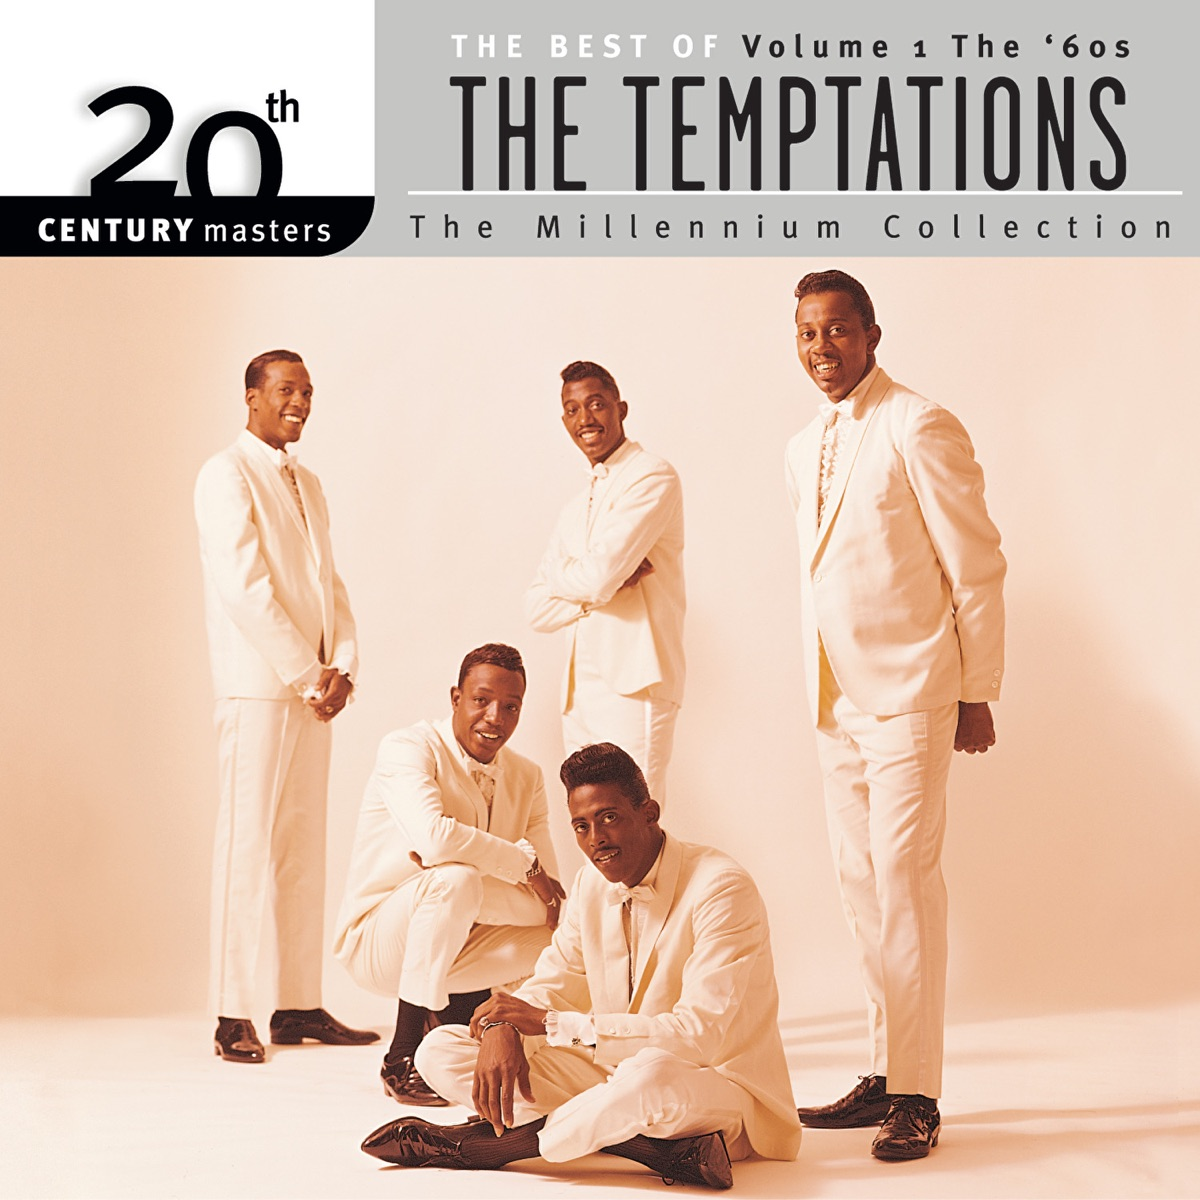 20th Century Masters - The Millennium Collection The Best of The Temptations Vol 1 The 60s The Temptations CD cover